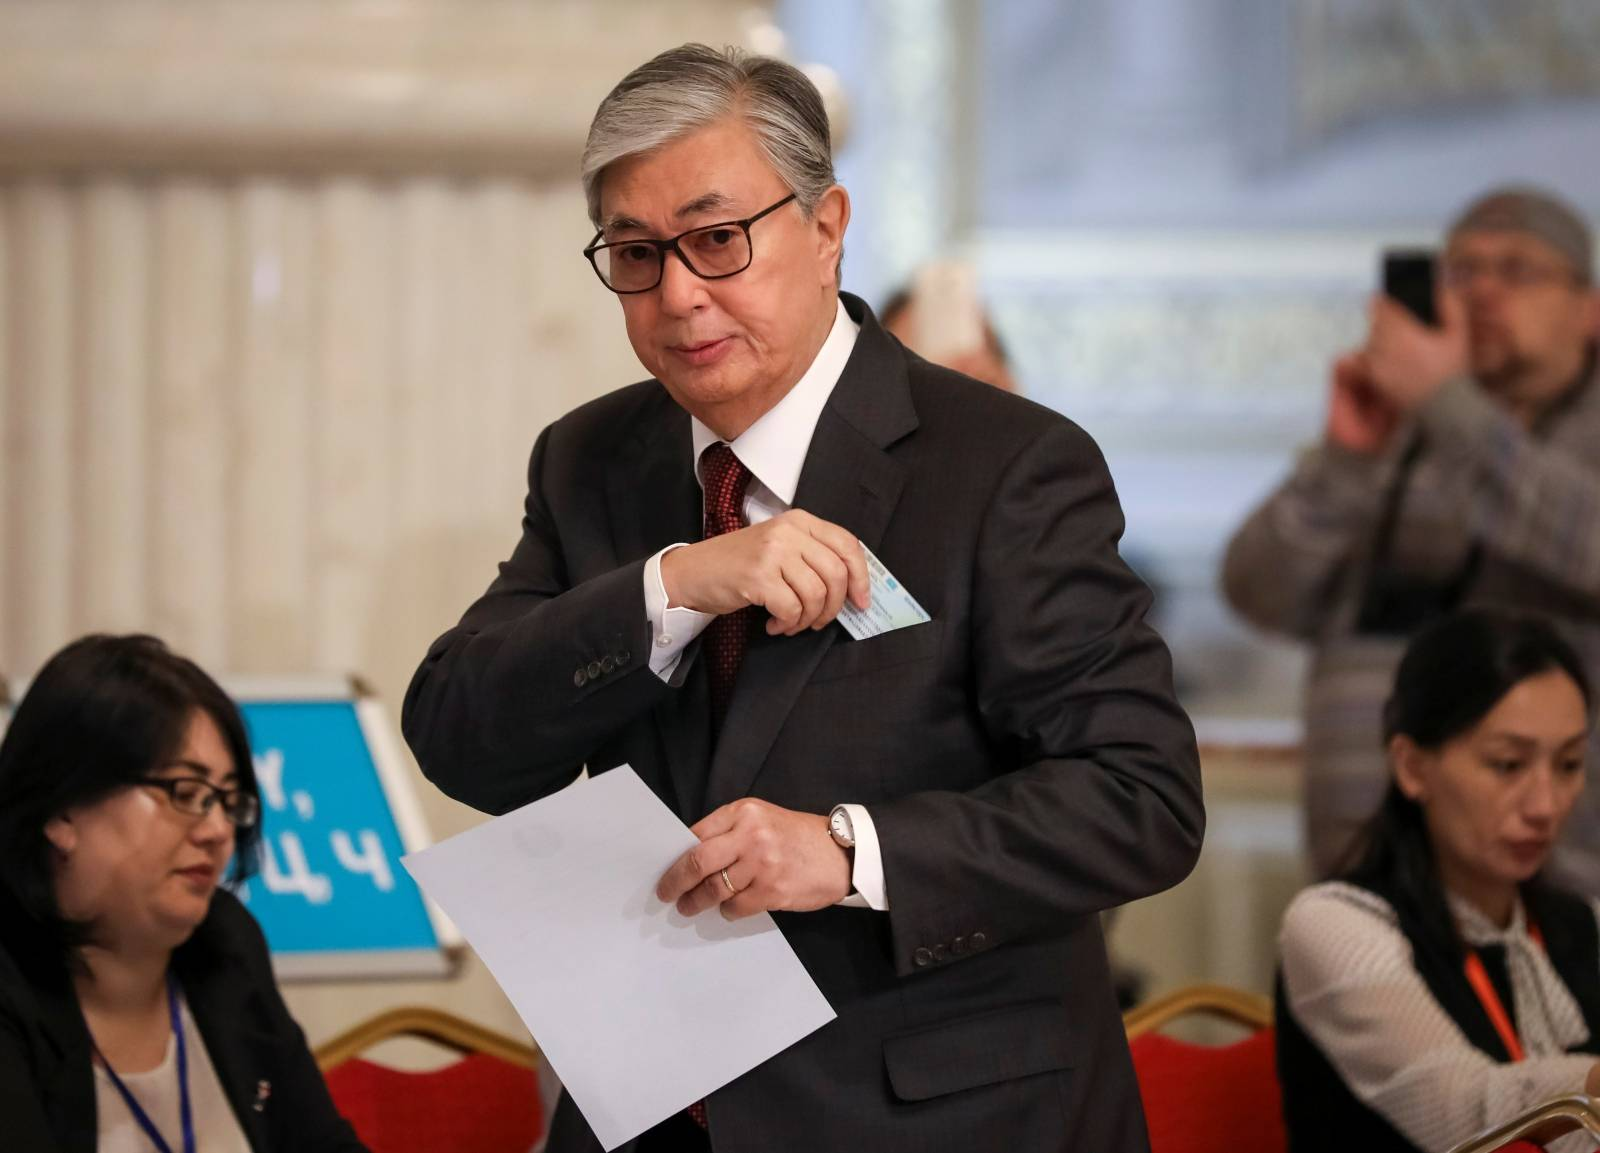 Kassym-Jomart Tokayev, Kazakhstan's President and presidential candidate, votes during presidential election in Nur-Sultan